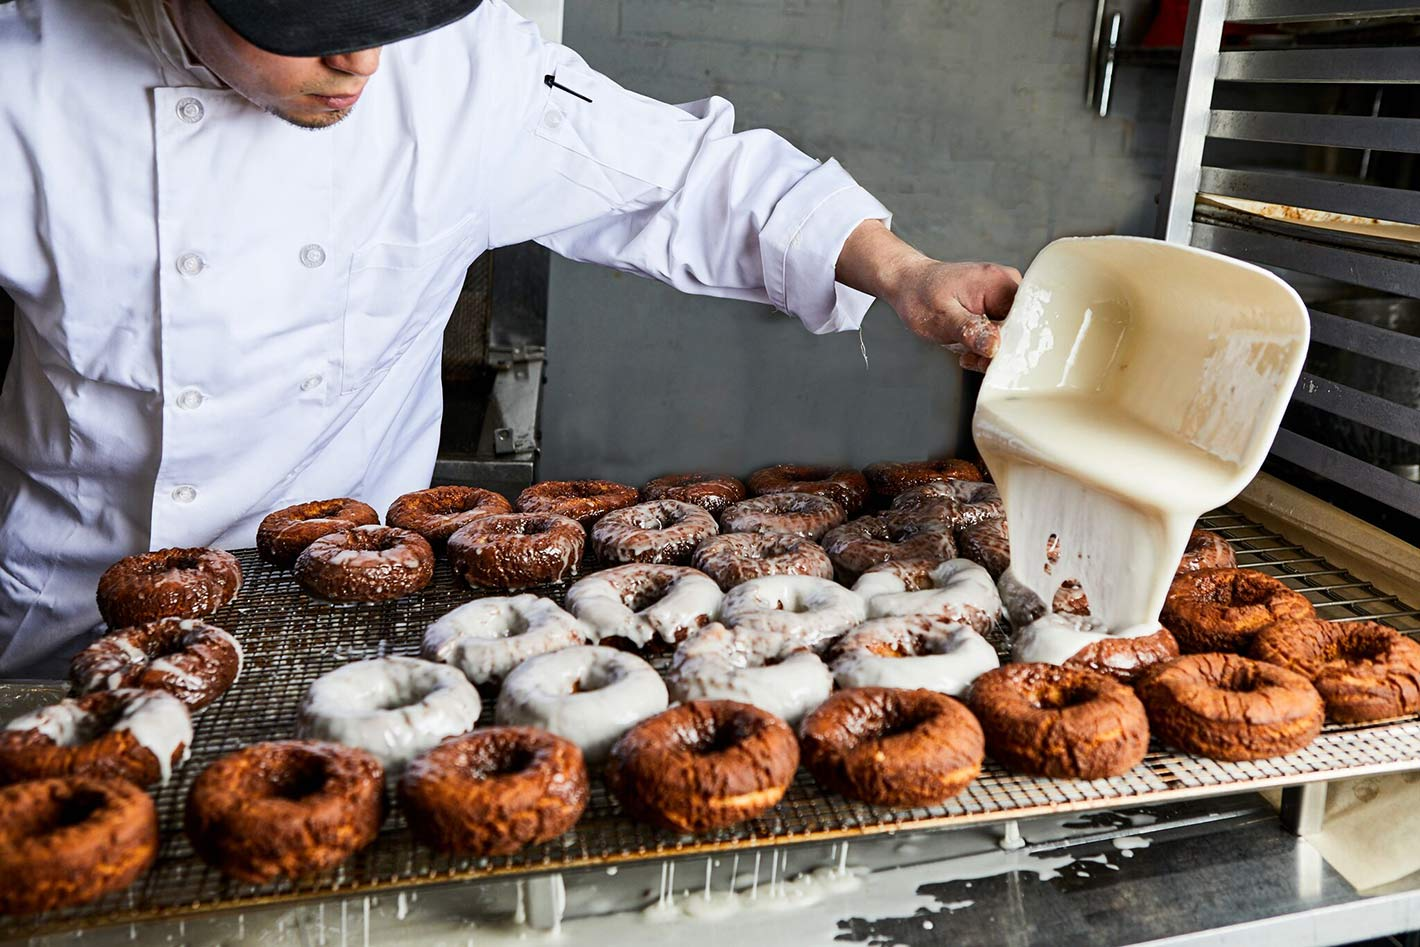 Pouring glaze on donuts